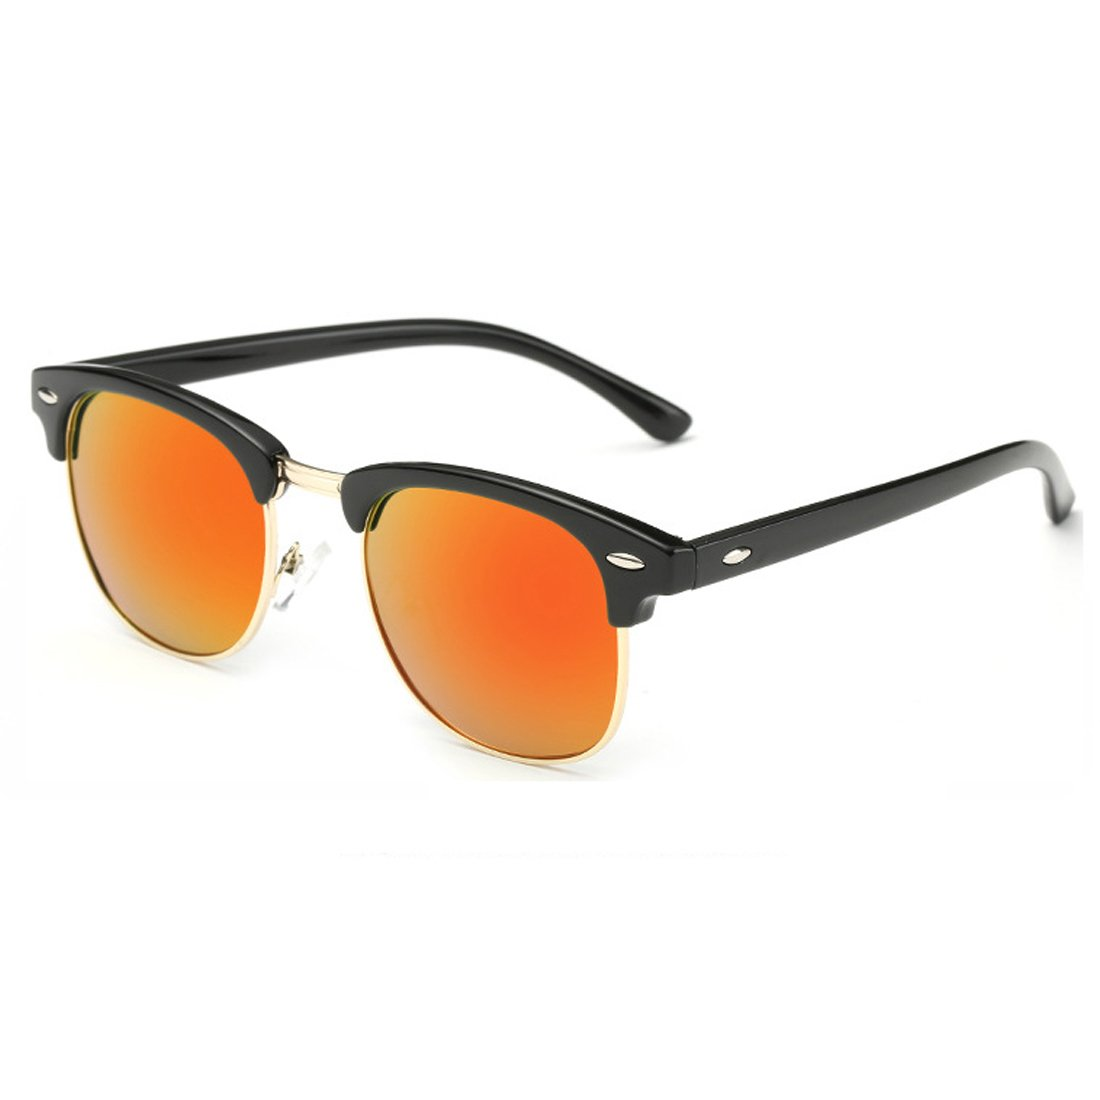 Ko /& Will Half-Rimless Frame Muti-Colors Lens Polarized Sunglasses for Unisex